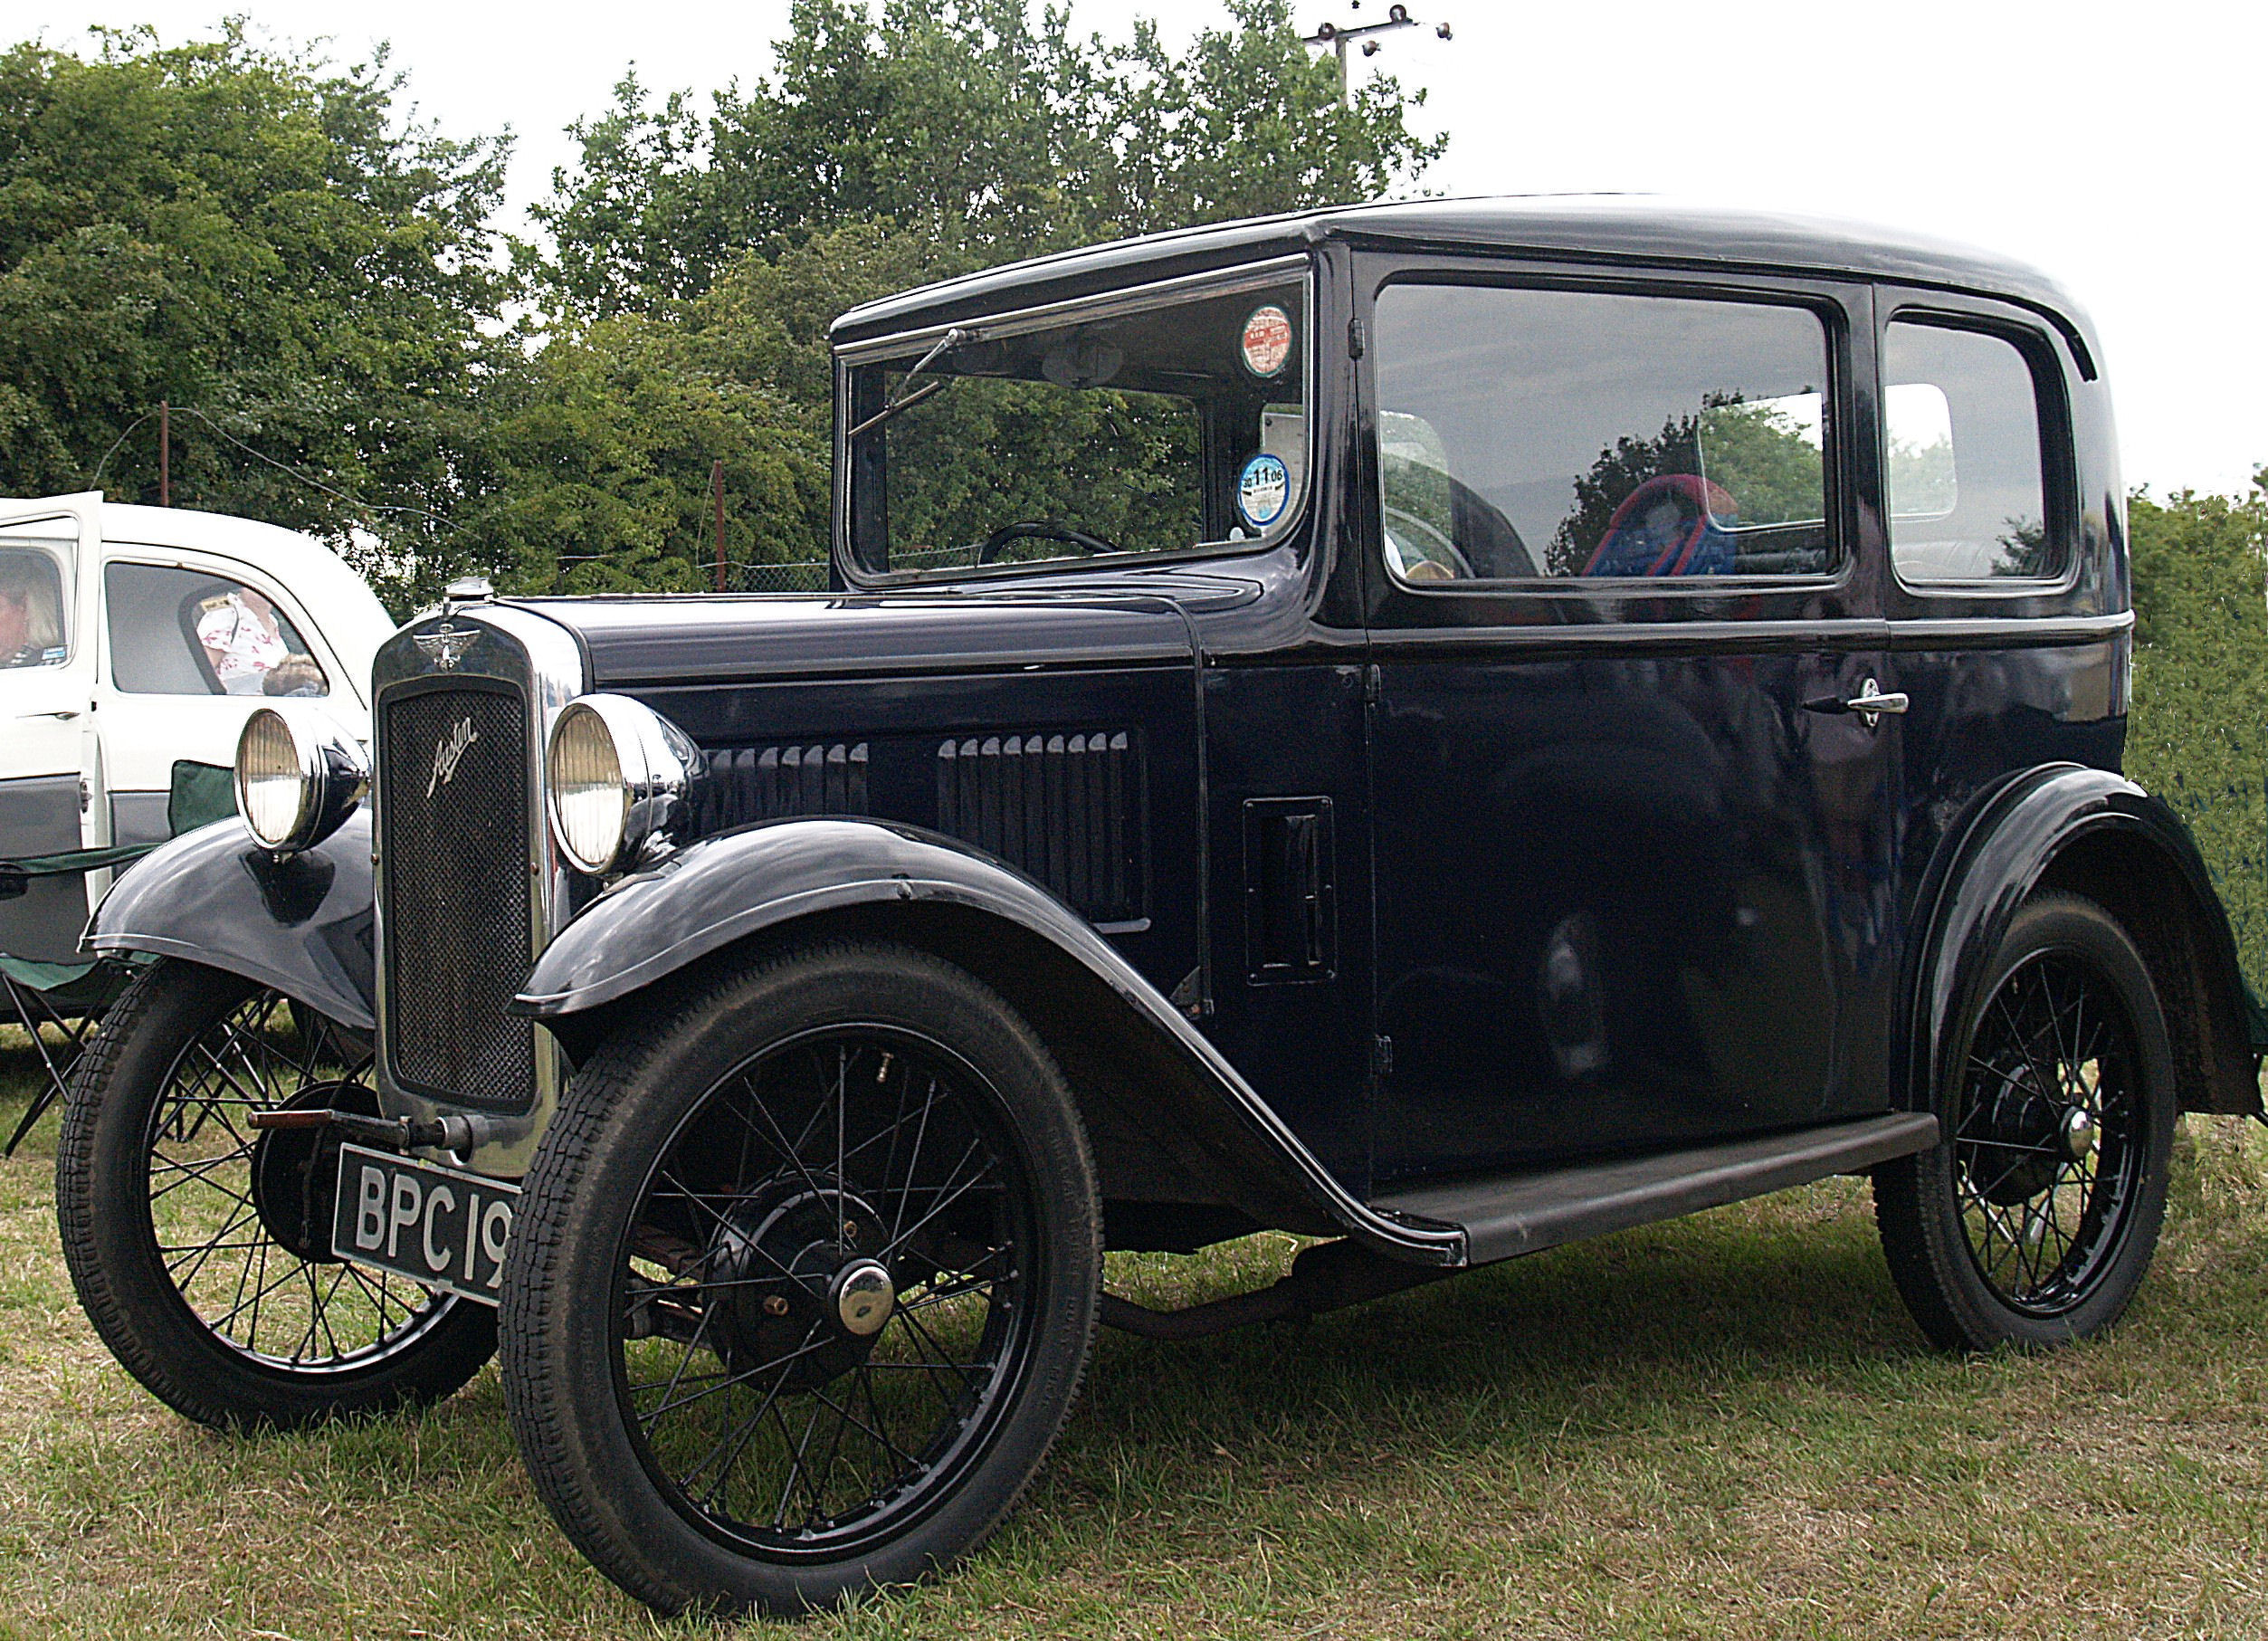 AUSTIN 7 BLACK NO PEOPLE | Flickr - Photo Sharing!